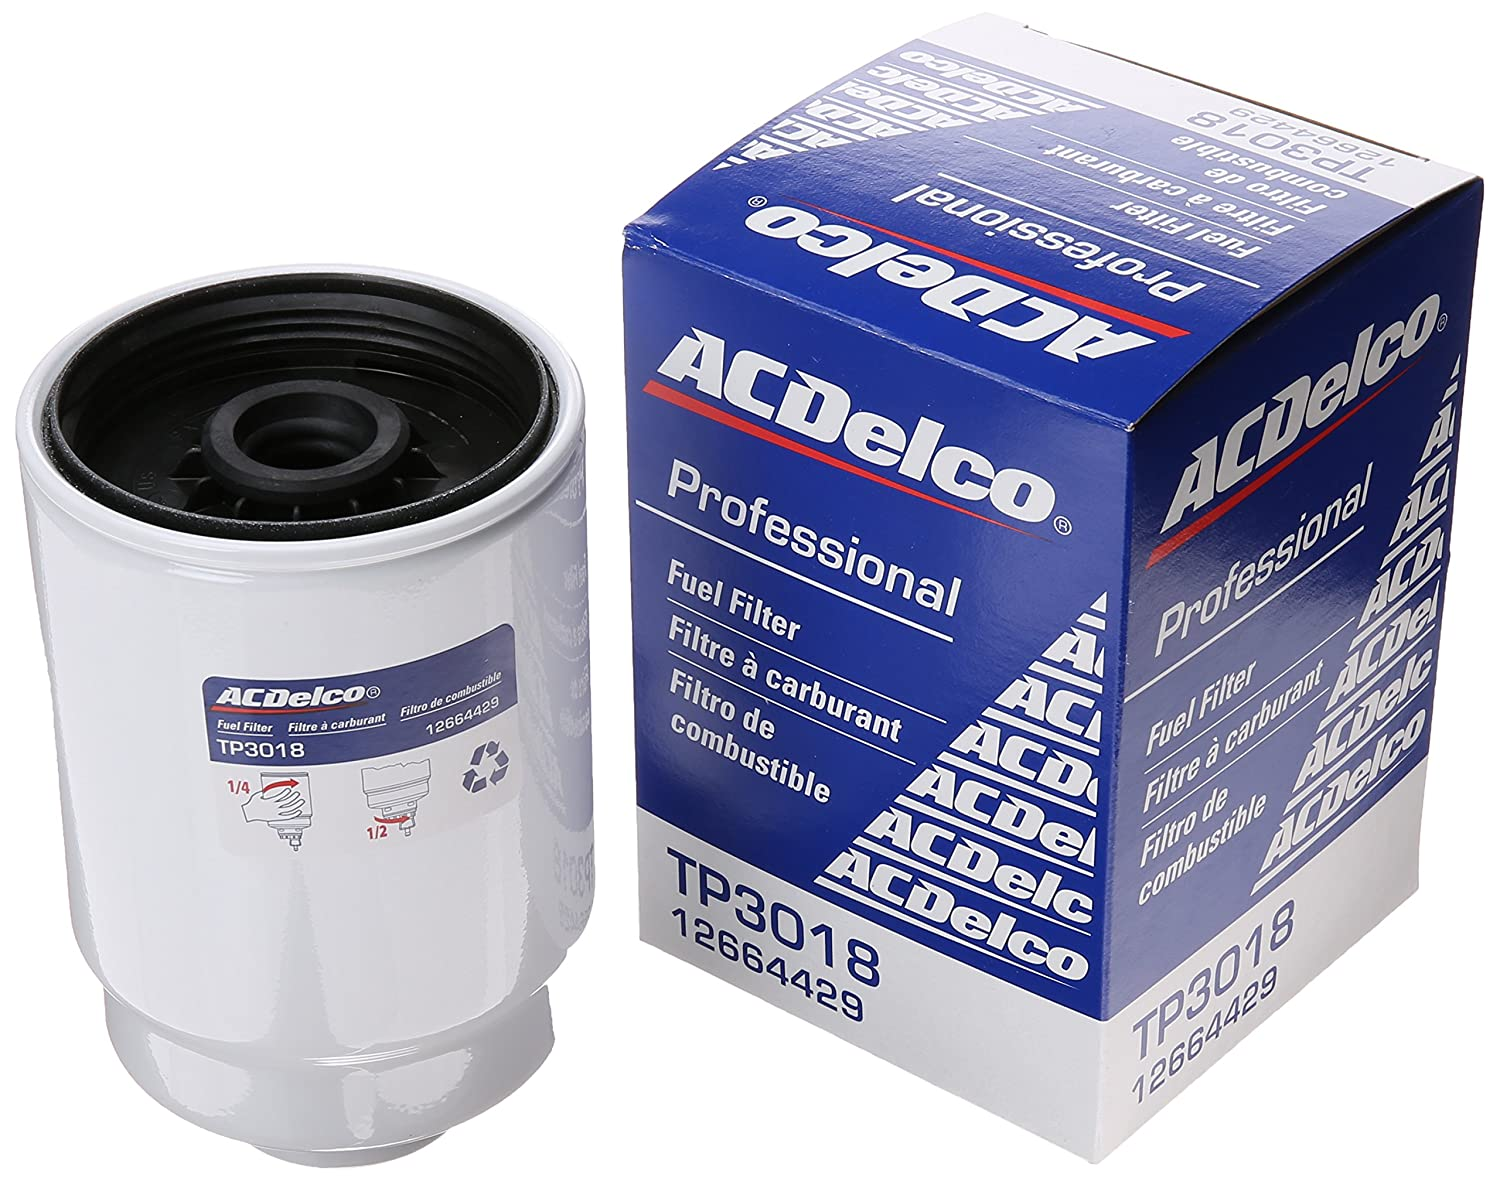 Fuel Filters Replacement Parts Automotive 2006 Dodge Ram Filter Location Acdelco Tp3018 Professional With Seals